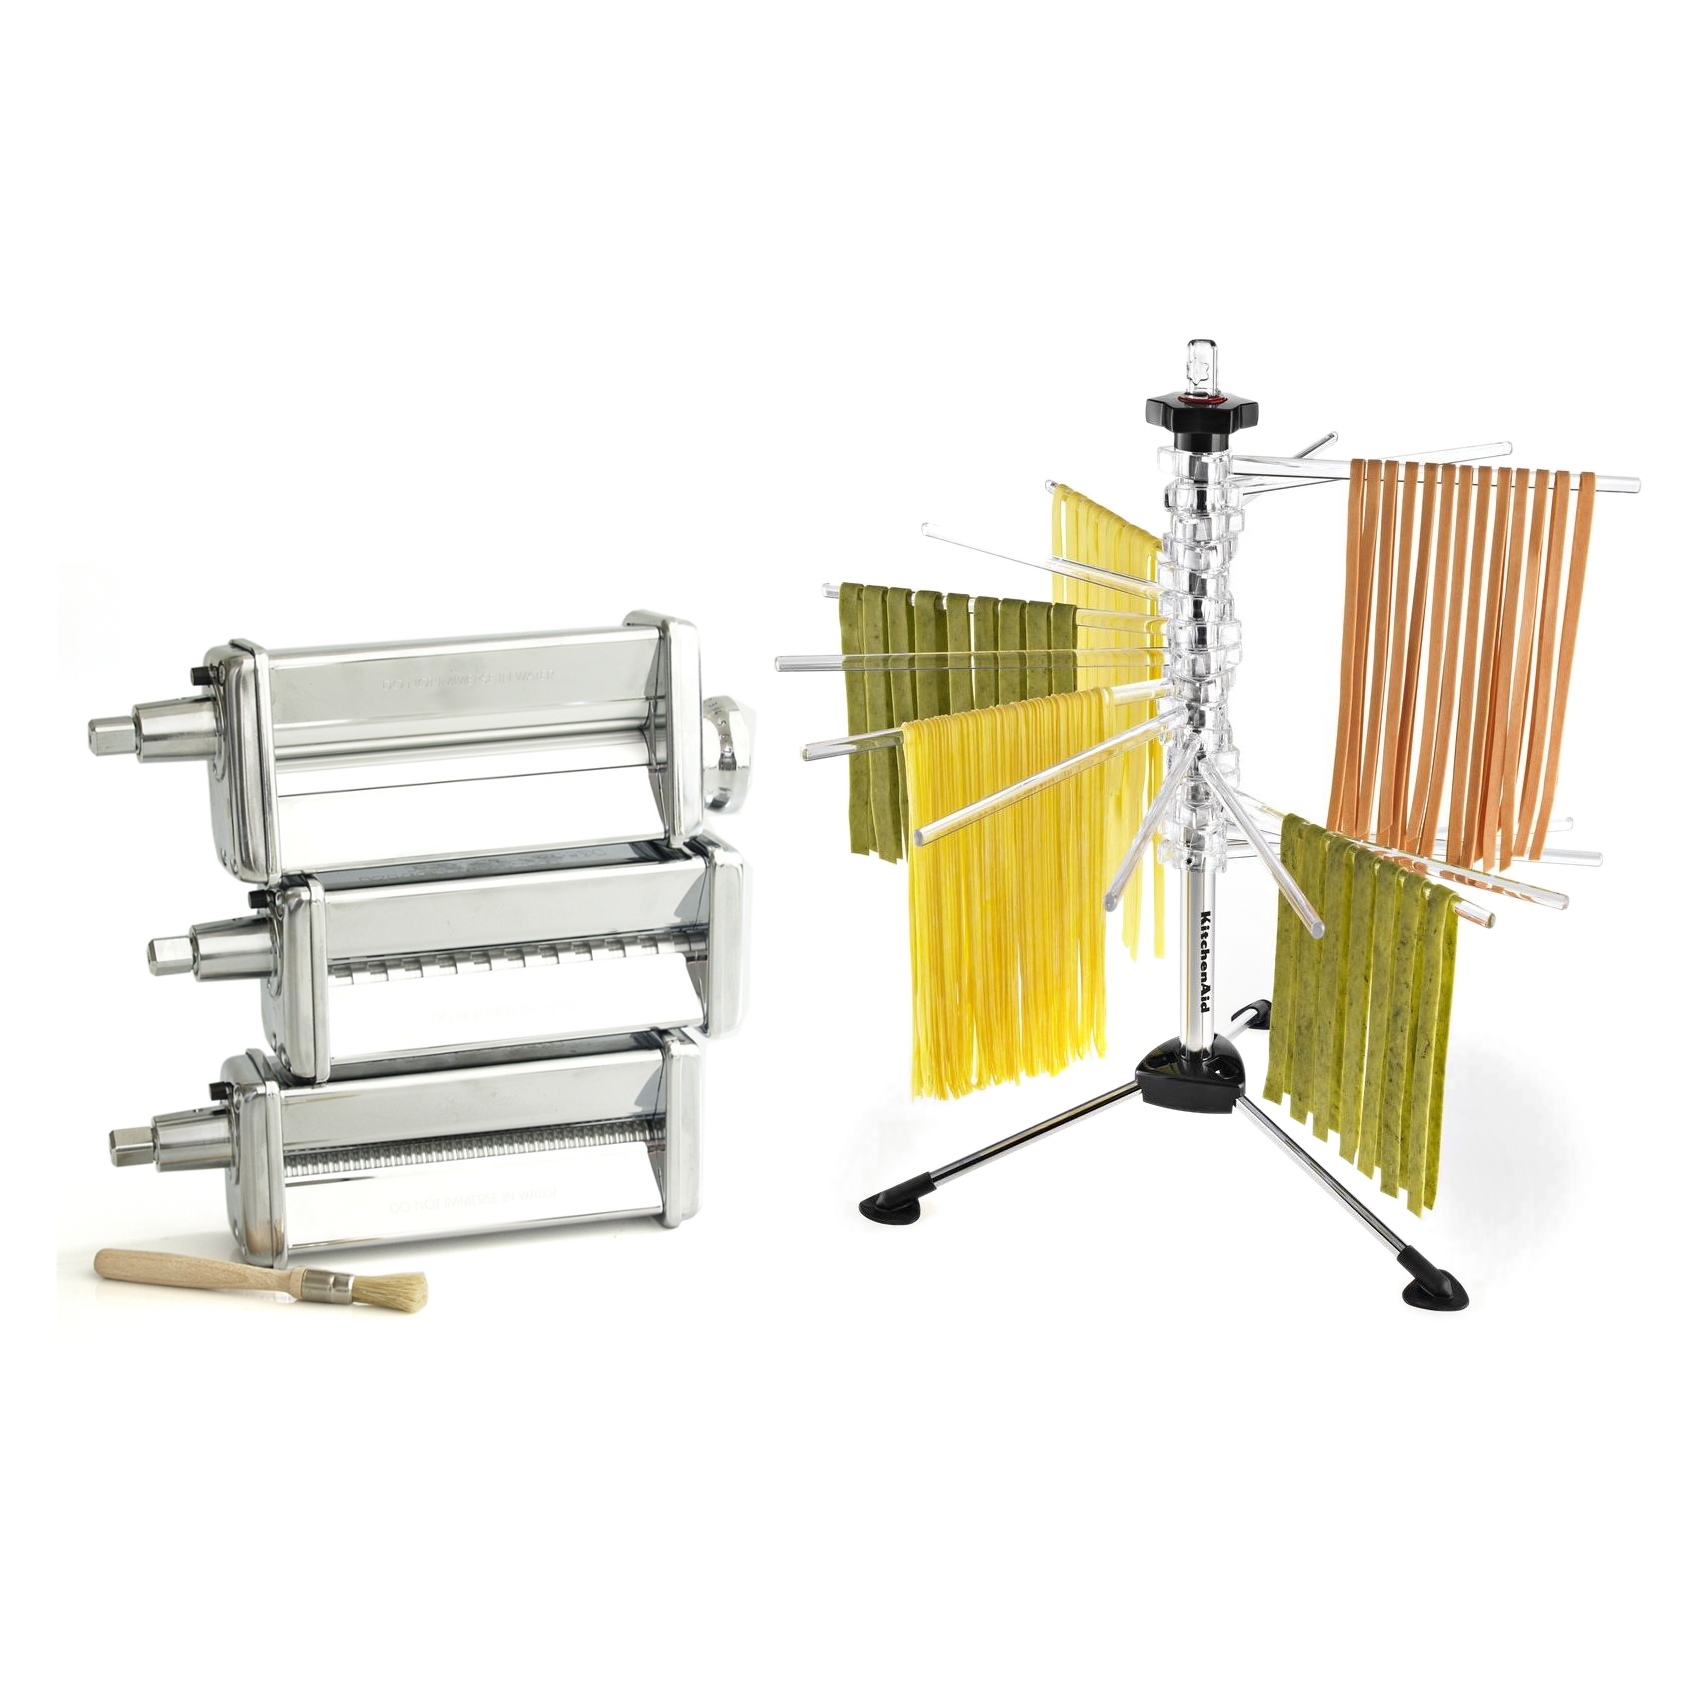 KitchenAid Stainless Steel Pasta Roller and Cutter Set with Pasta Drying Rack